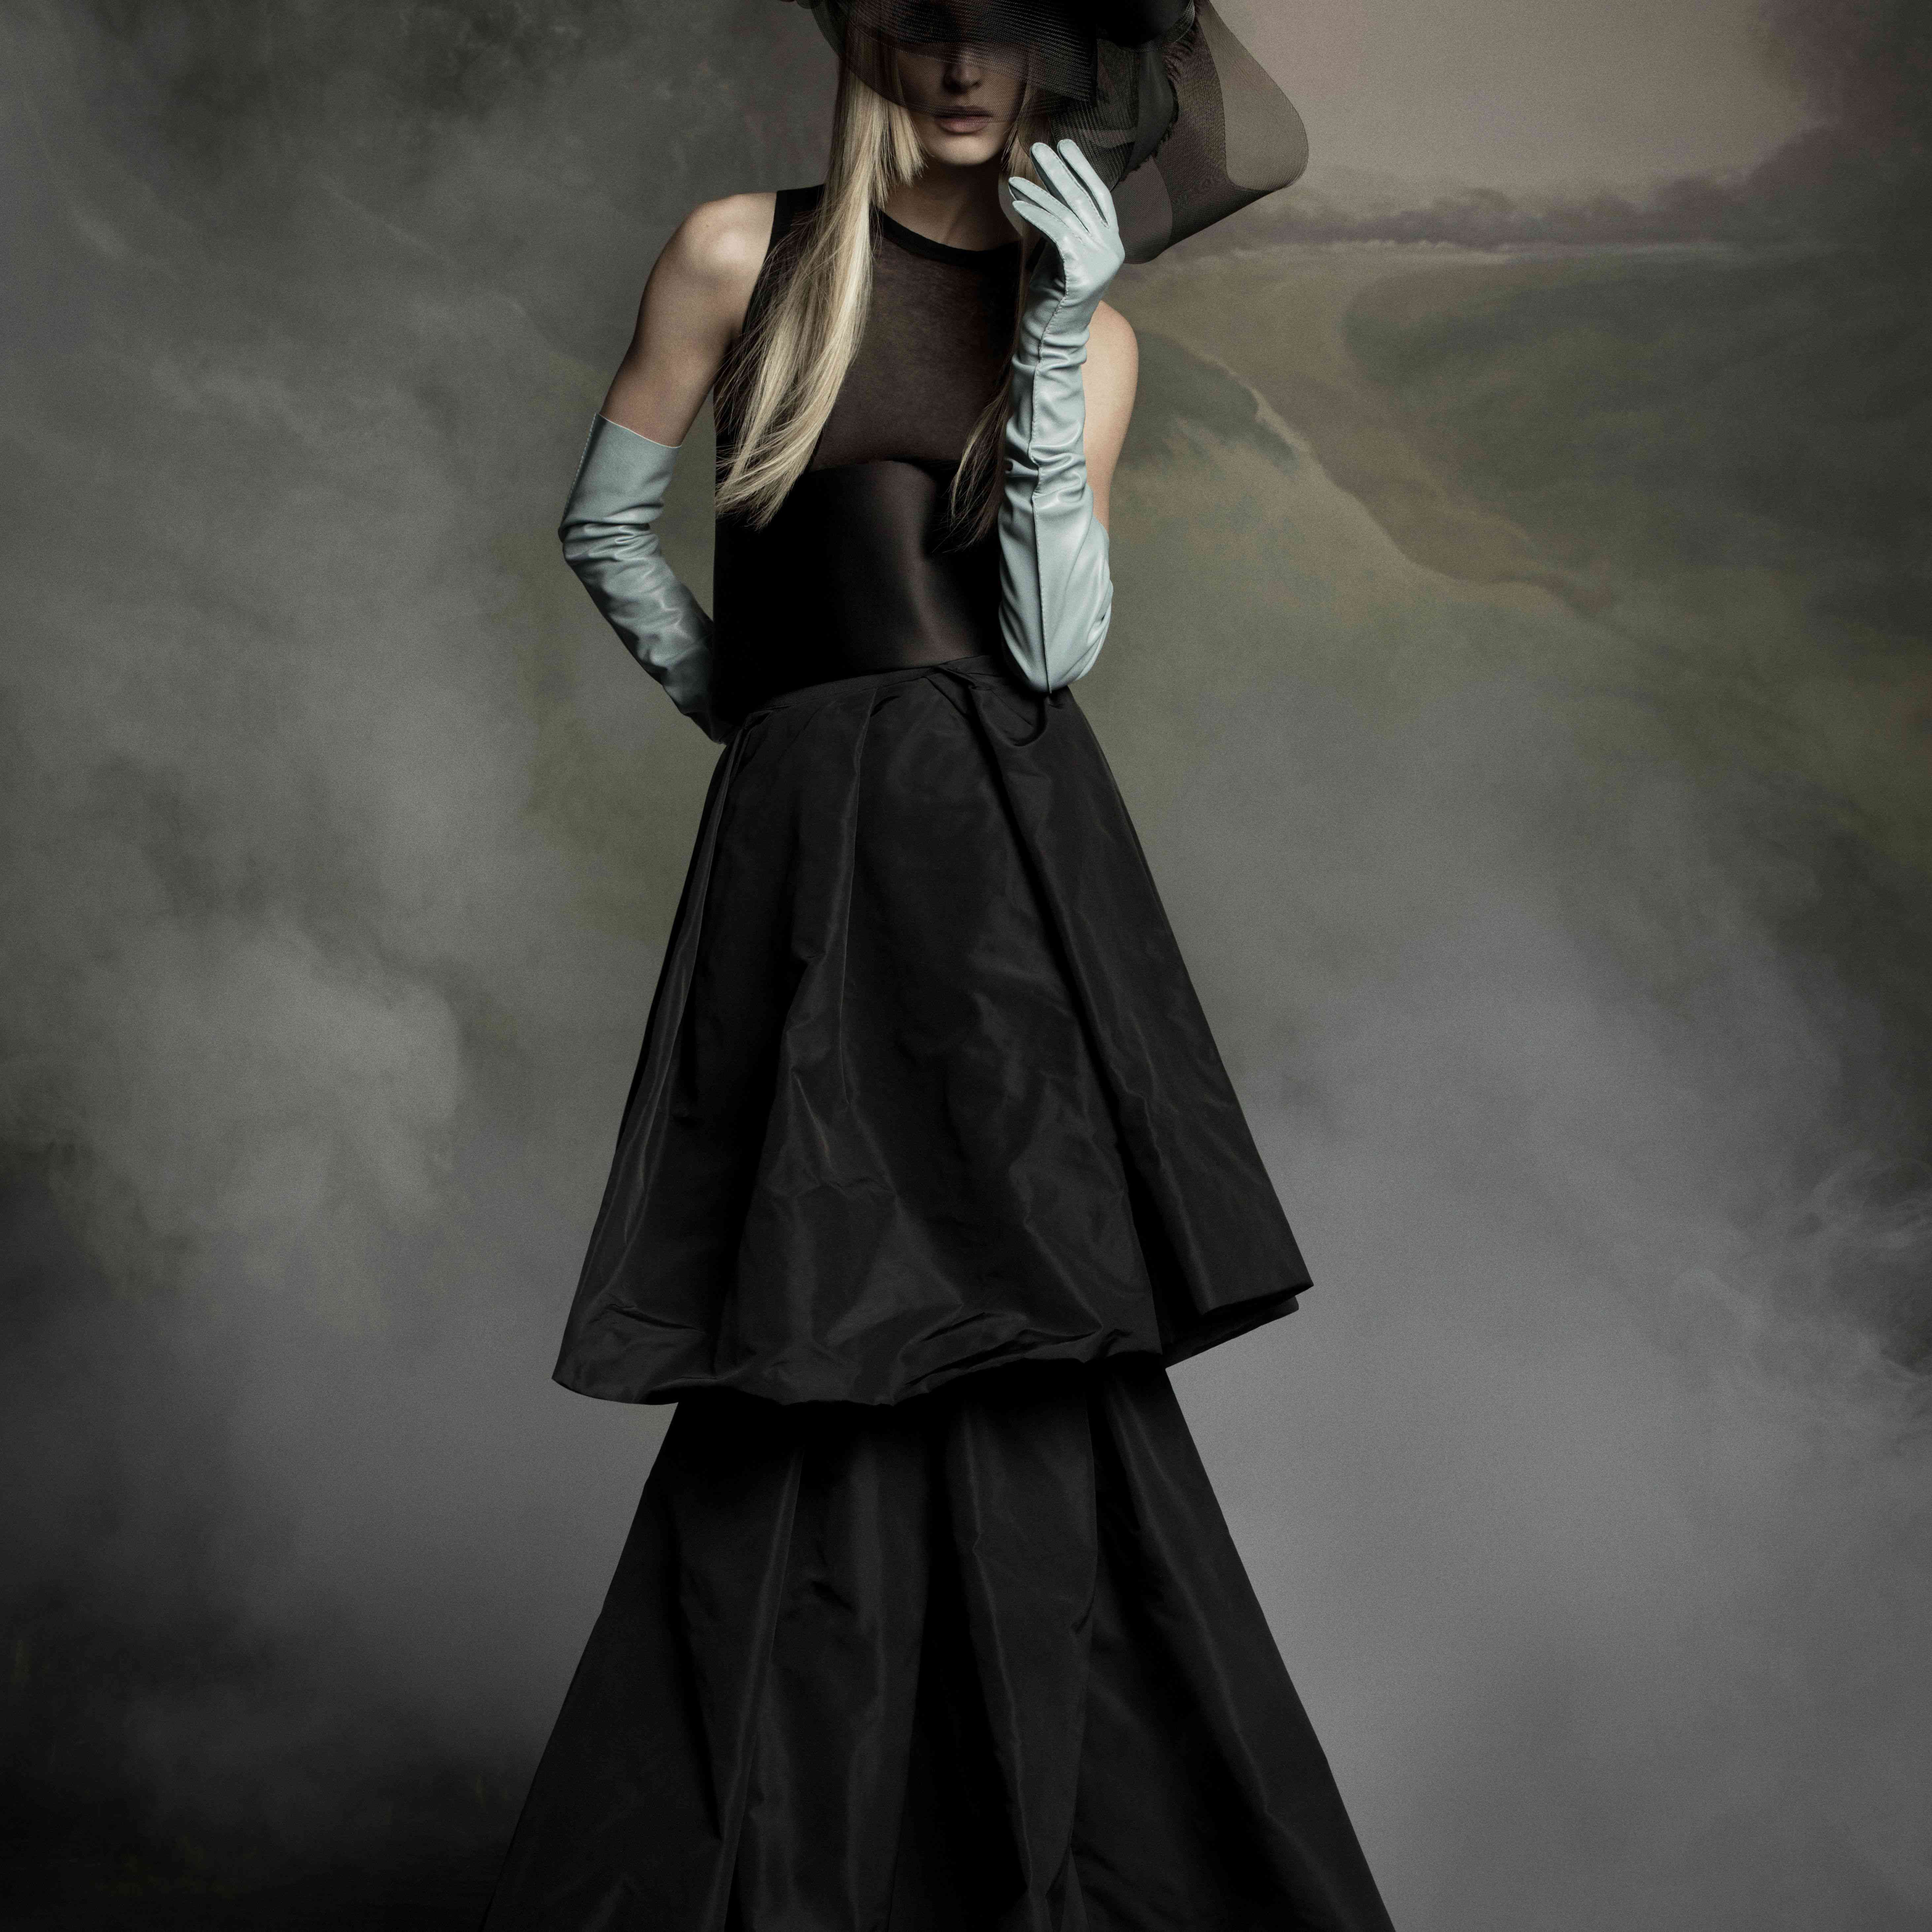 Model in two-tiered black gown with a black headpiece